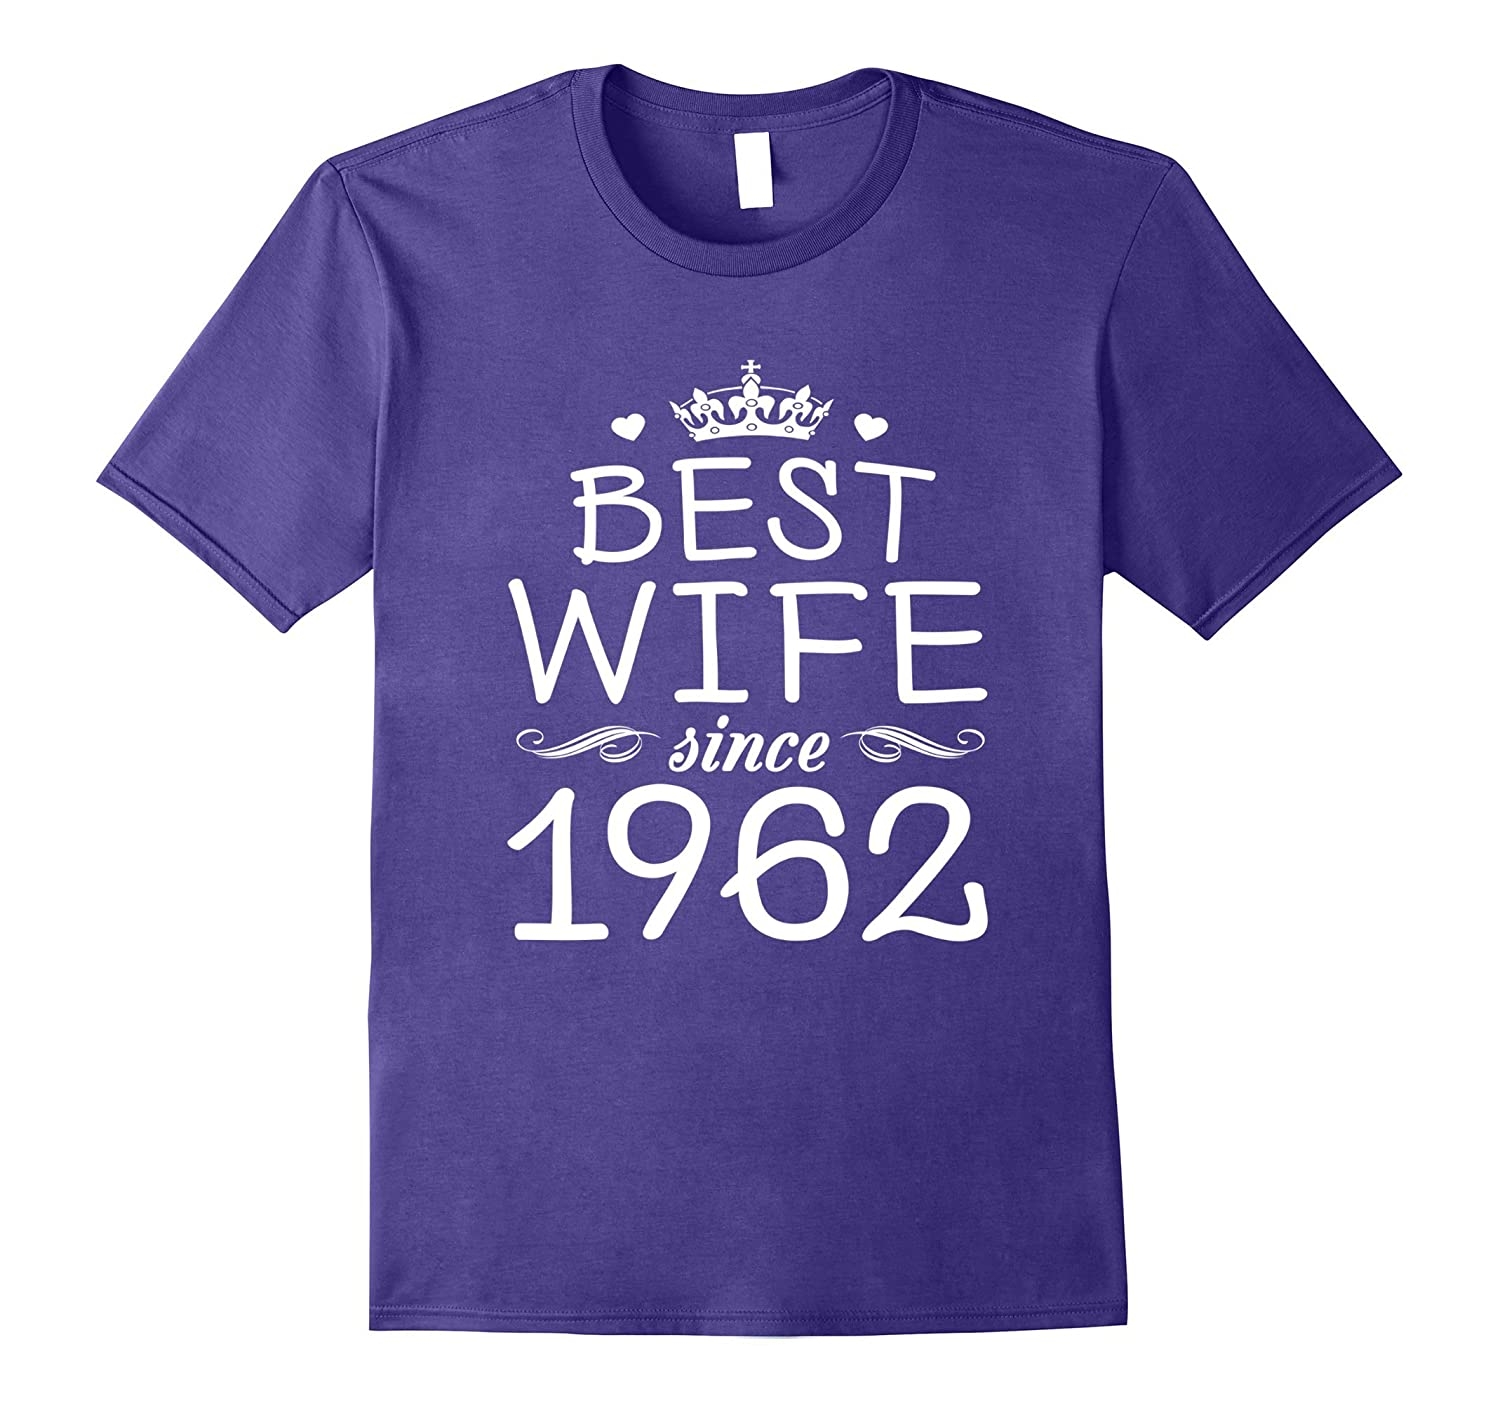 42 Wedding Anniversary Gift: 42nd Wedding Anniversary T-Shirts For Husband From Wife-PL